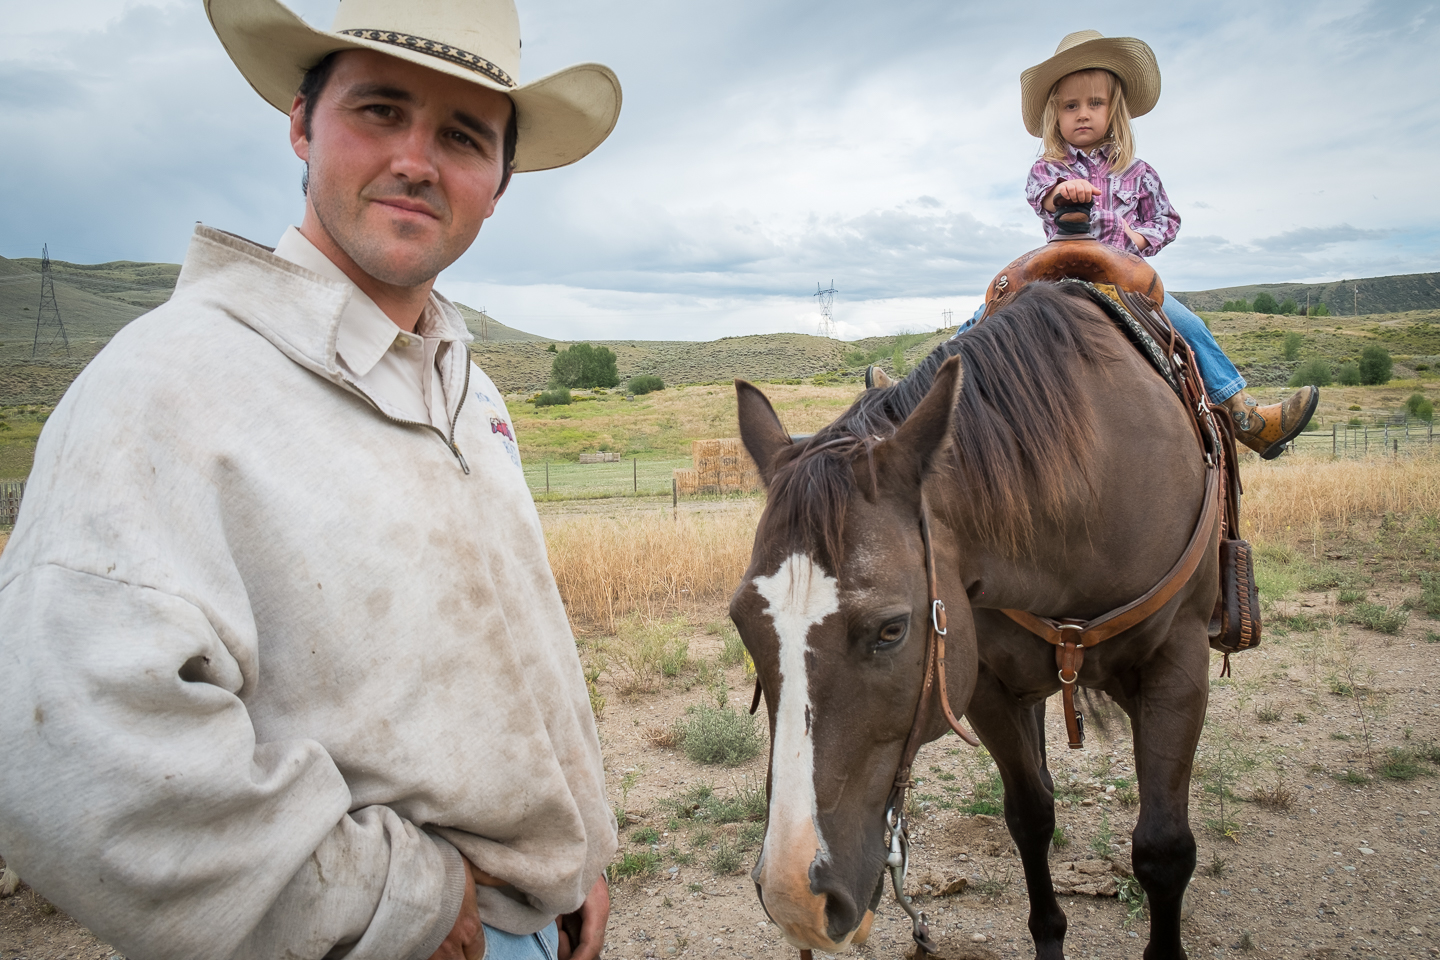 western life cowboy cowgirl horse father daughter